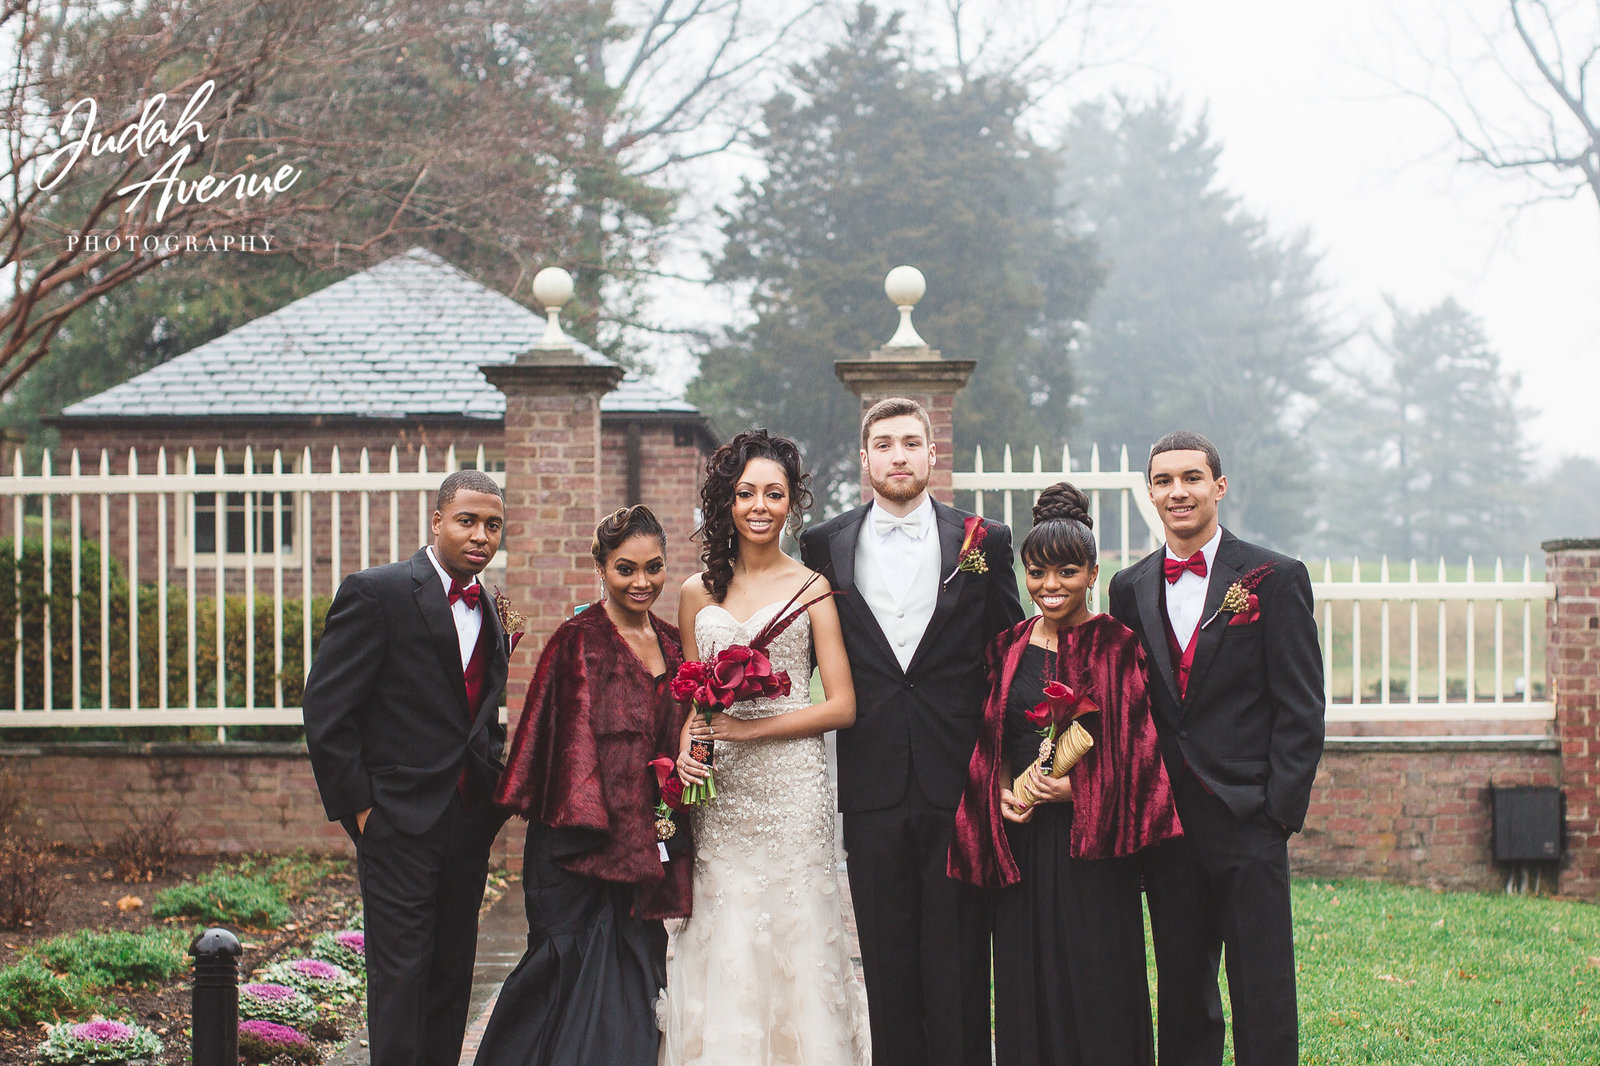 fr judah avenue wedding photographer in washington dc maryland and virginia-79